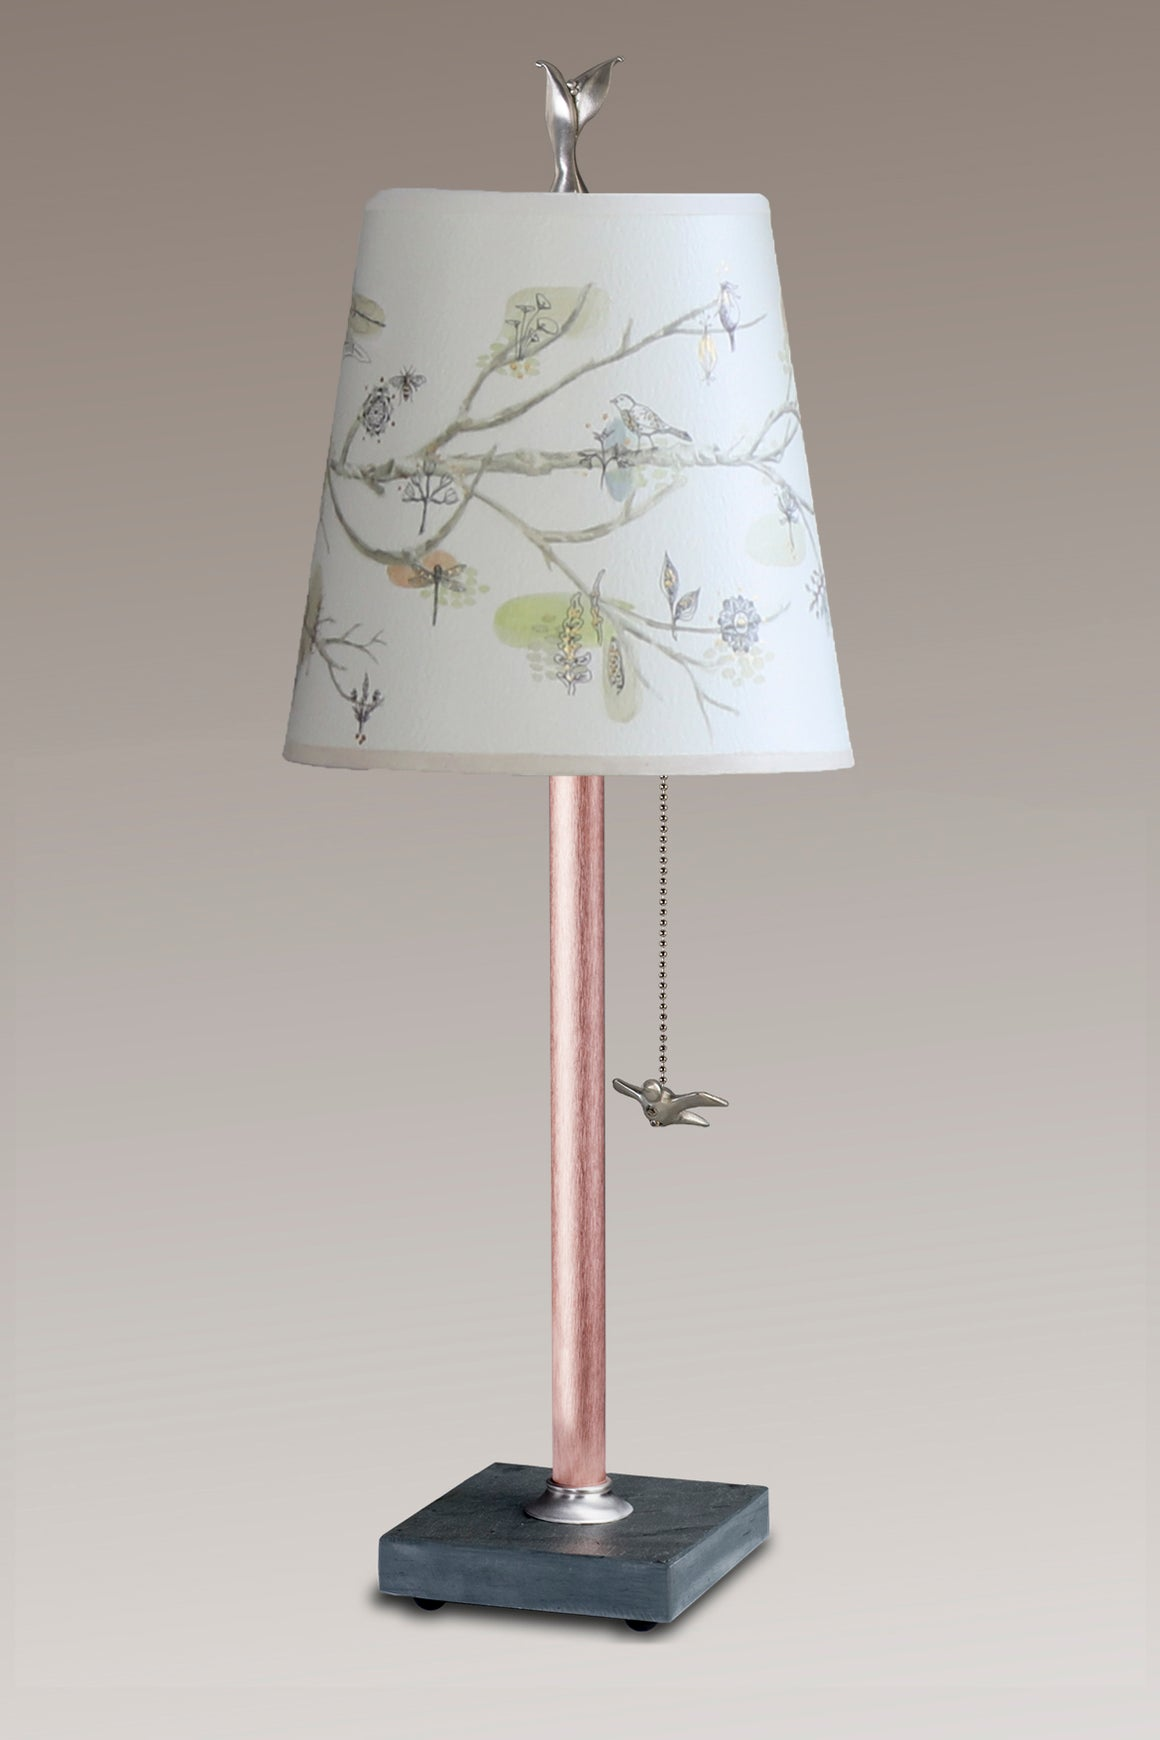 Copper Table Lamp on Vermont Slate Base with Small Drum Shade in Artful Branch